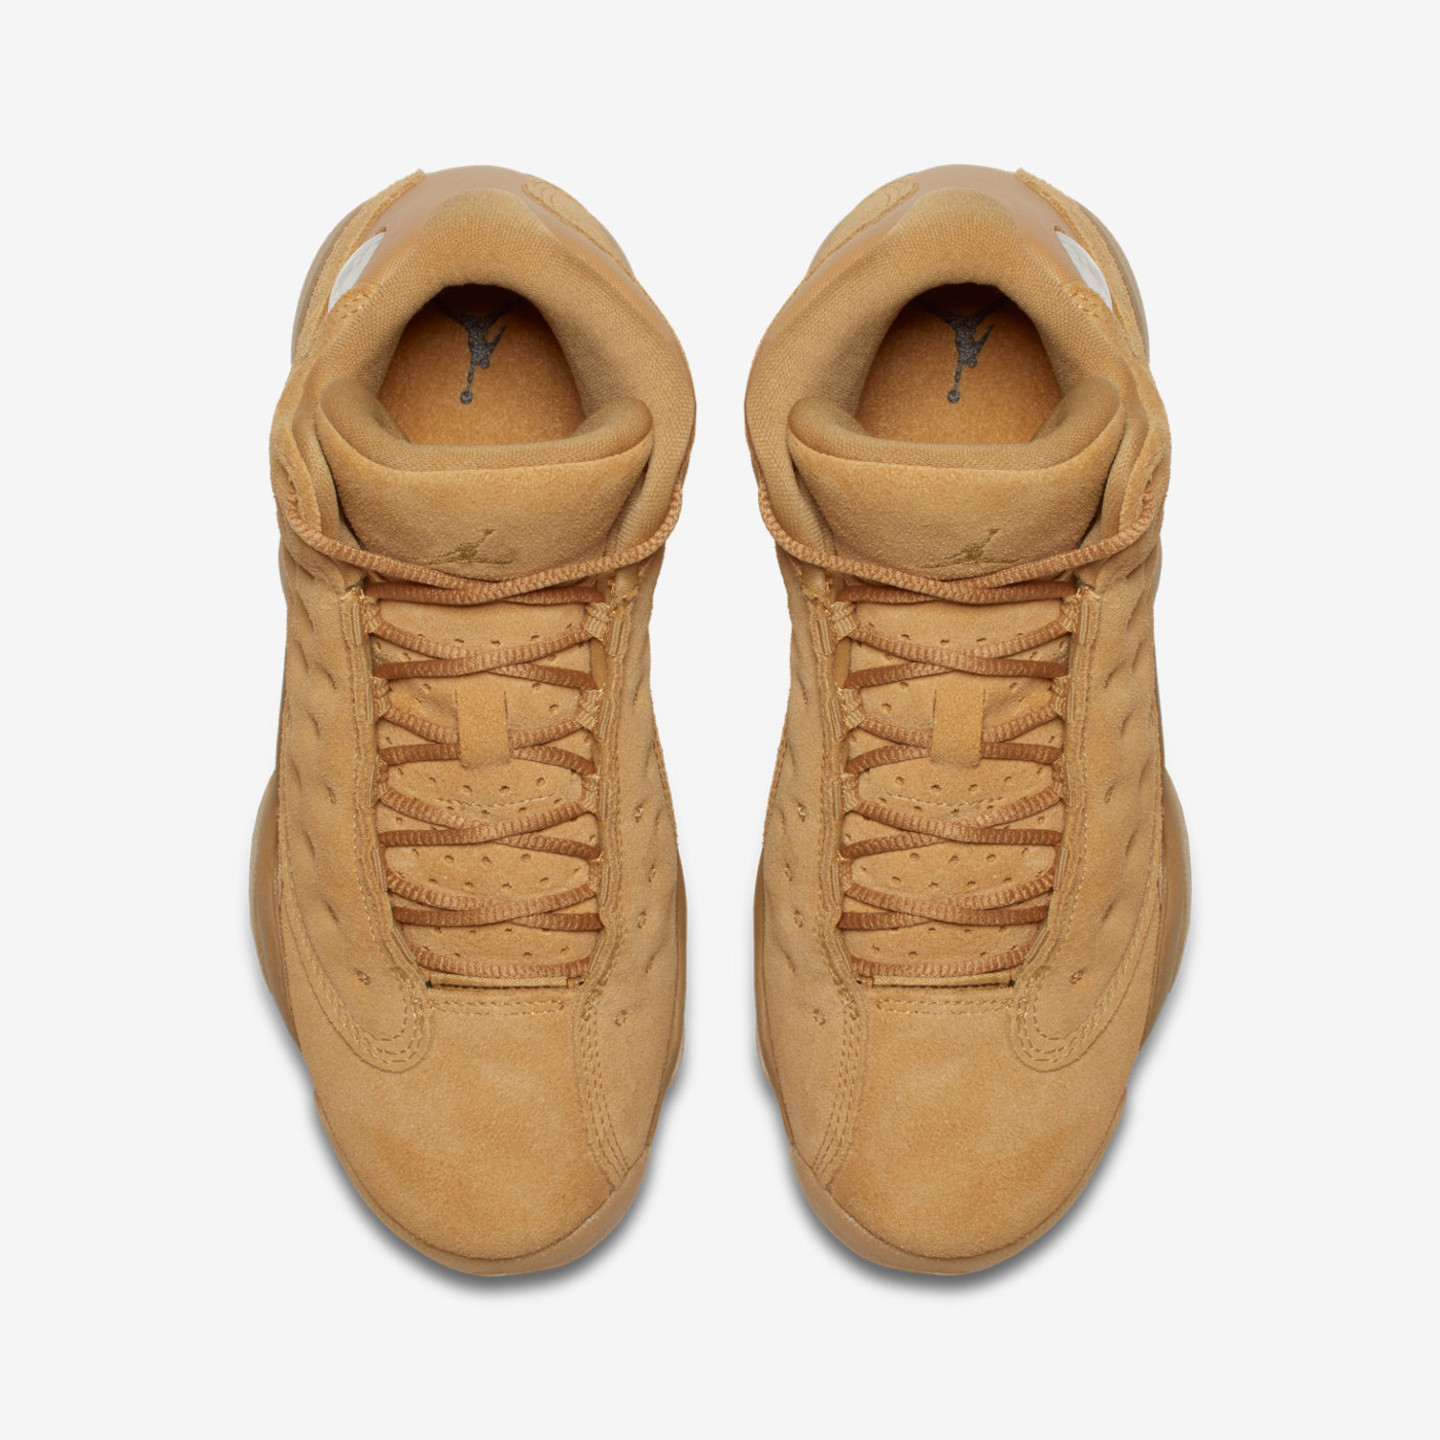 Jordan Air Jordan 13 Retro GS 'Wheat Pack' Elemental Gold / Baroque Brown / Gum / Yellow 414574-705